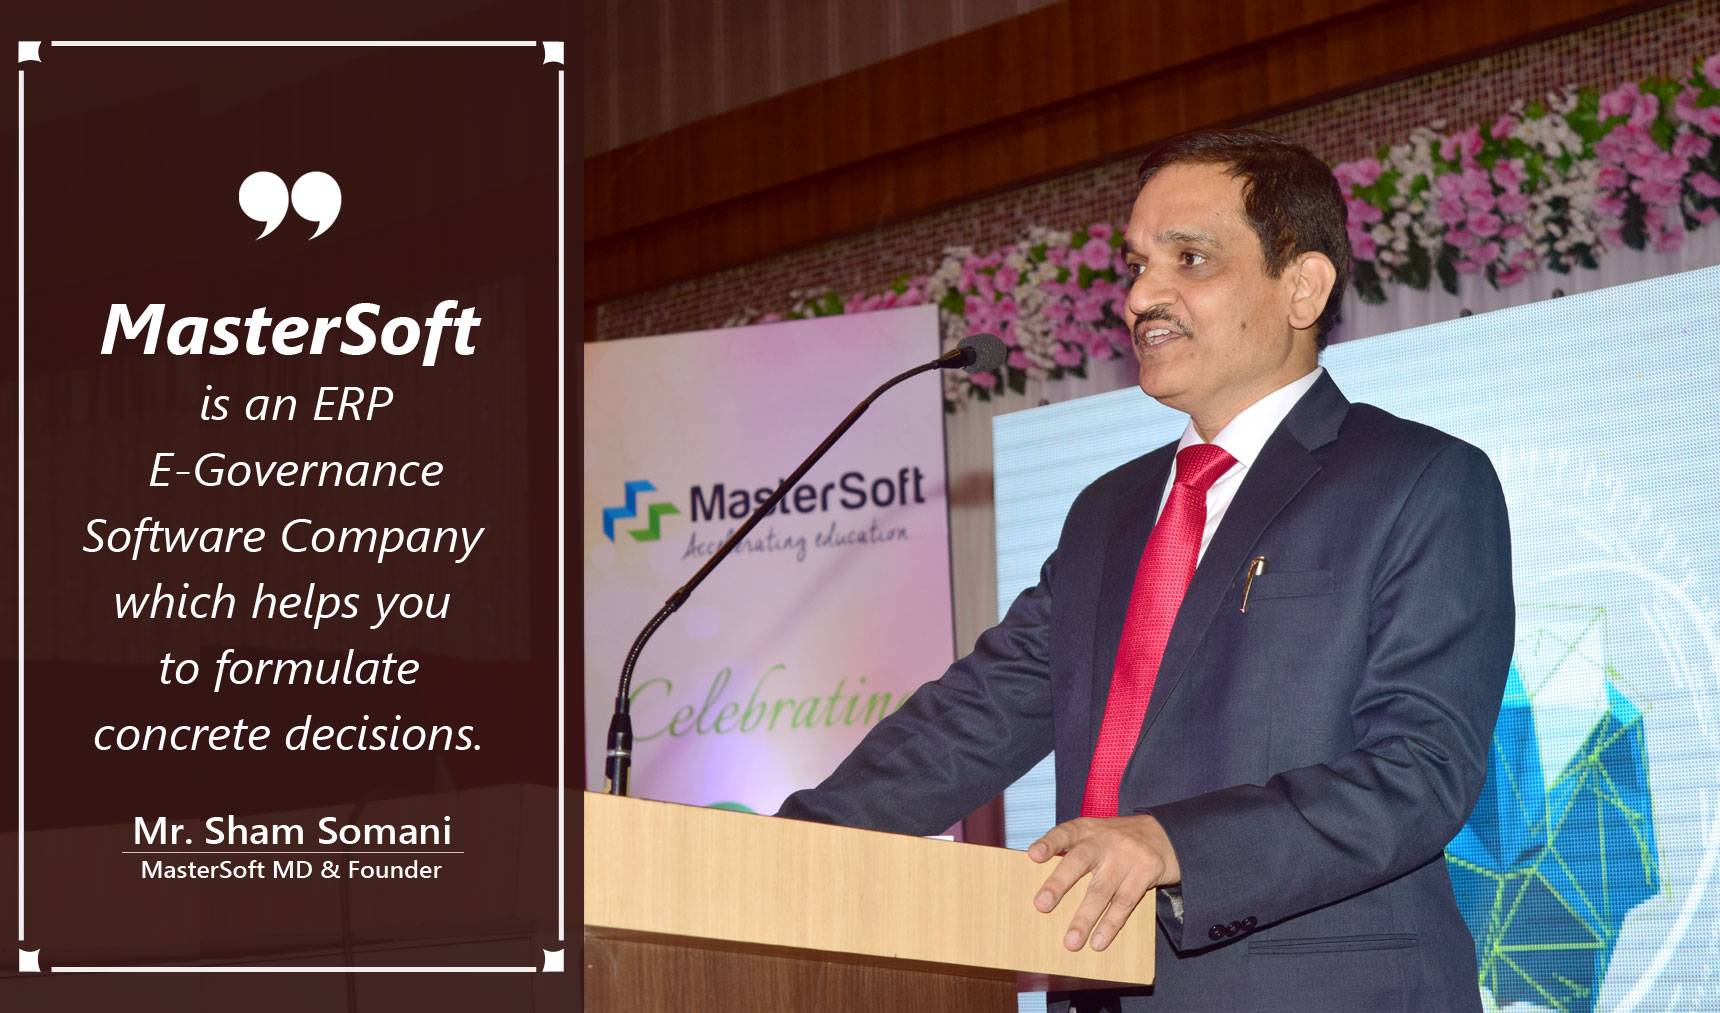 MasterSoft MD Mr. Sham Somani